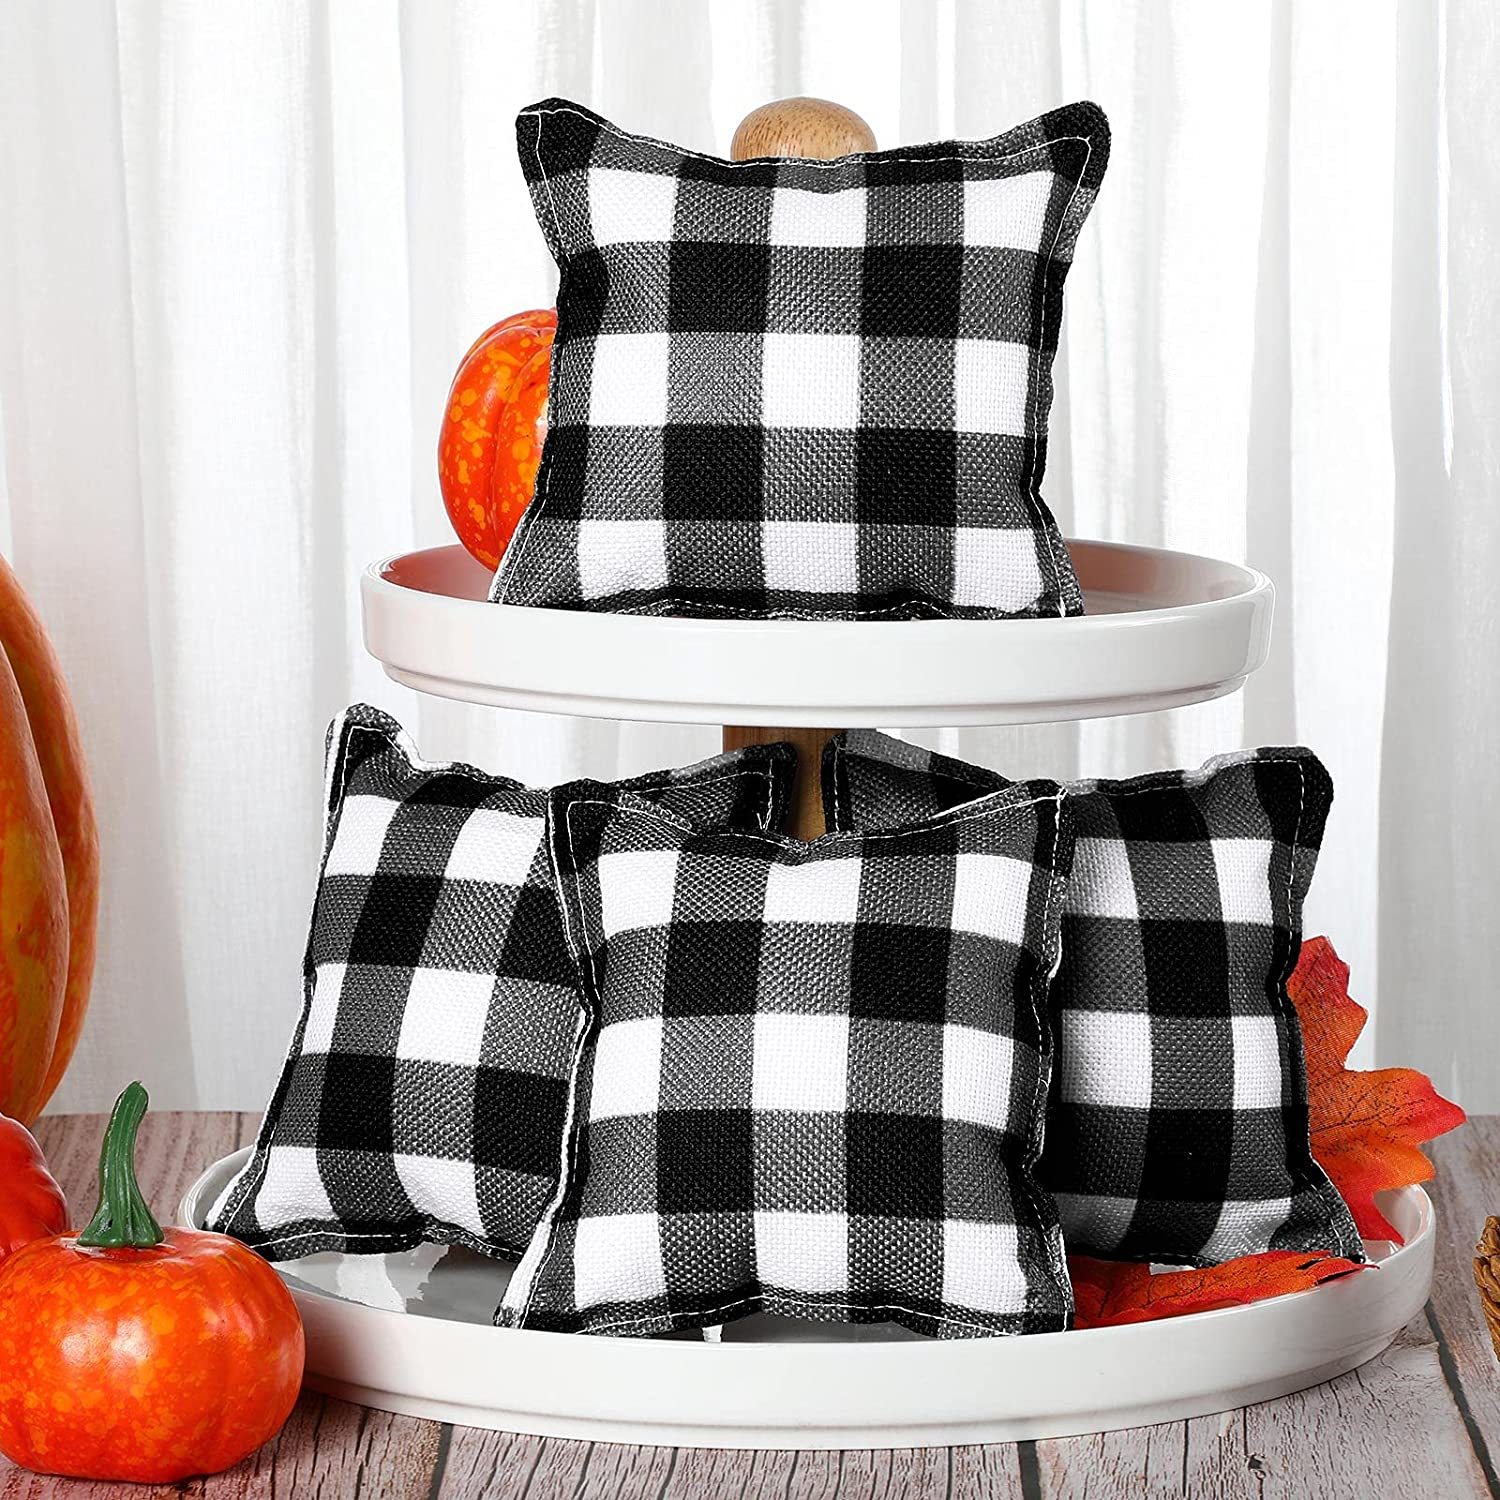 4 Pieces Gifts Mini Very popular Pillows Decorations Plaid Blac Buffalo Pillow